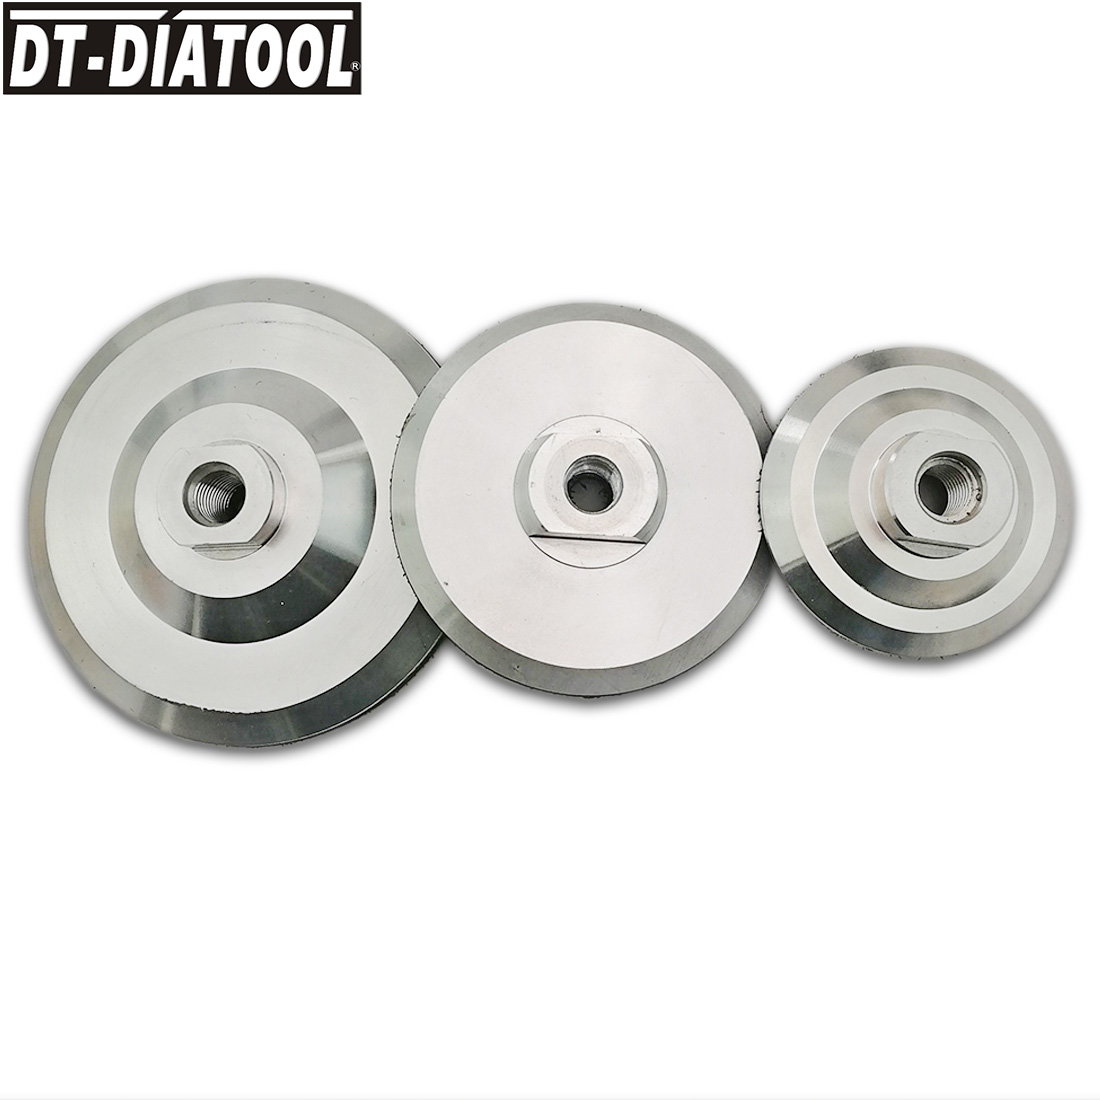 Back Pad for Diamond Polishing Pads with M14 or 5/8 Thread Al base backer Sanding and Grinding Discs DIameter 3